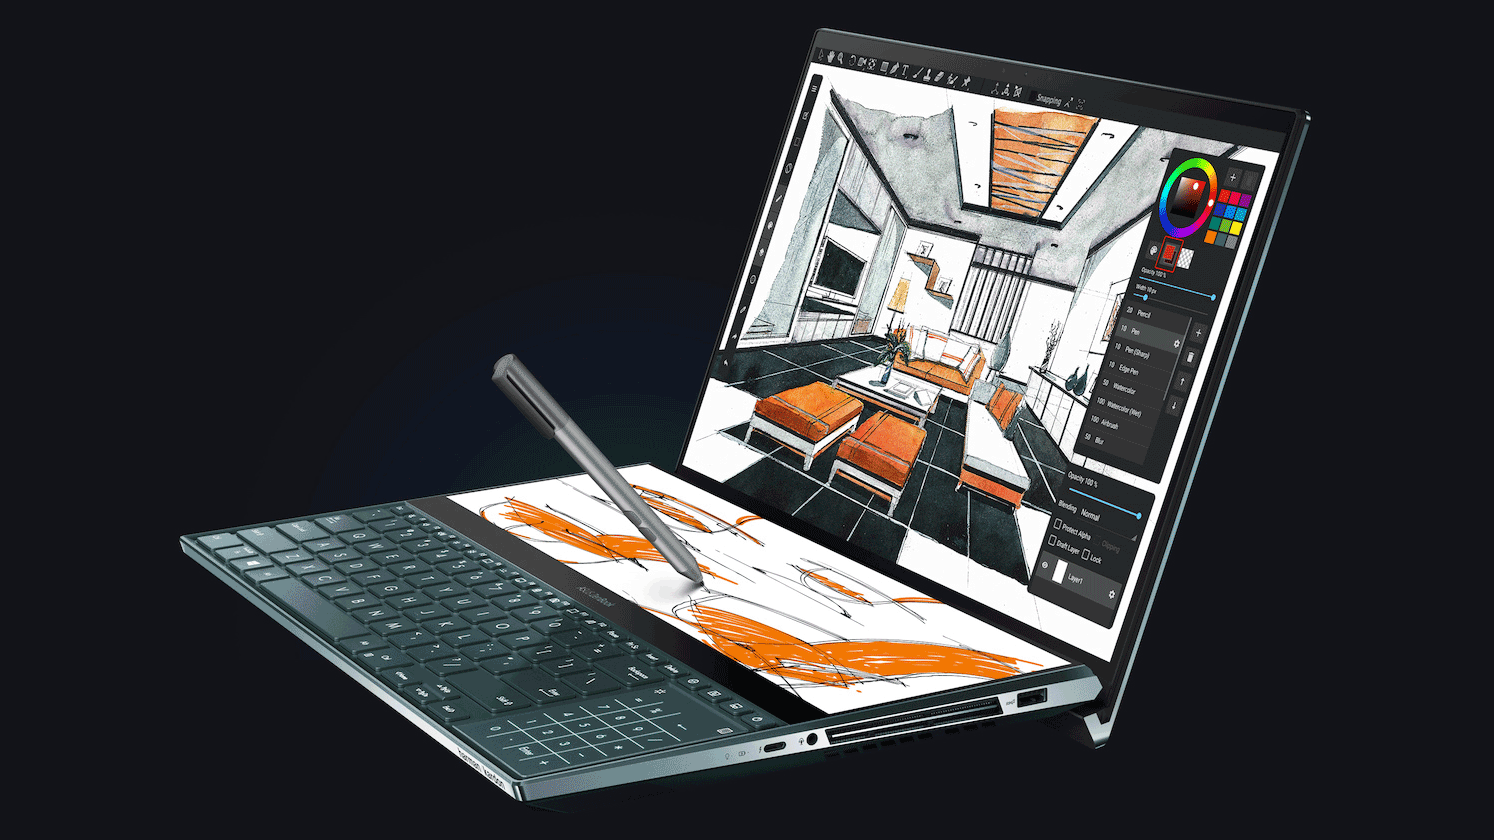 The Asus Zenbook Pro Duo features a secondary 4K touch-display